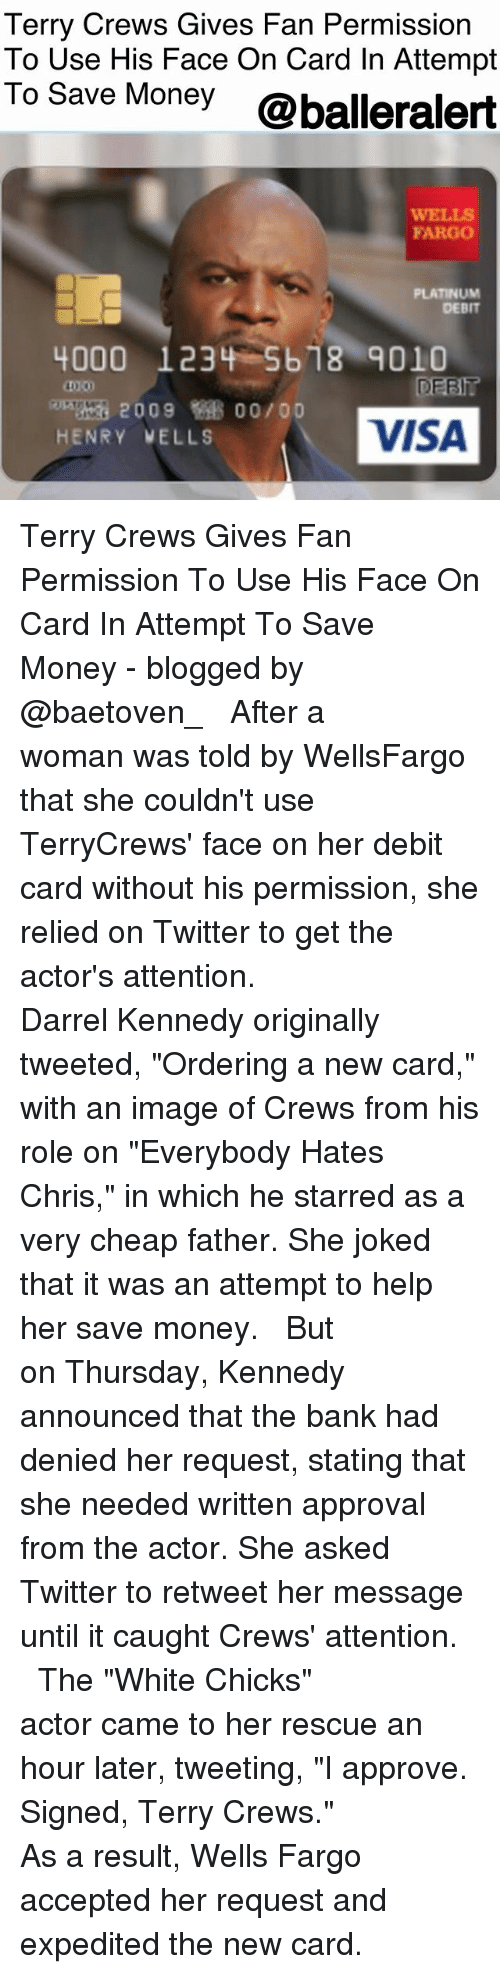 "Joked: Terry Crews Gives Fan Permission  To Use His Face On Card In Attempt  To Save Money @balleralert  WELLS  FARGO  PLATINUM  DEBIT  4000 123 -5b18-9010  40 00  DEET?  2009  00/00  HENRY VELLS  VISA Terry Crews Gives Fan Permission To Use His Face On Card In Attempt To Save Money - blogged by @baetoven_ ⠀⠀⠀⠀⠀⠀⠀ ⠀⠀⠀⠀⠀⠀⠀ After a woman was told by WellsFargo that she couldn't use TerryCrews' face on her debit card without his permission, she relied on Twitter to get the actor's attention. ⠀⠀⠀⠀⠀⠀⠀ ⠀⠀⠀⠀⠀⠀⠀ Darrel Kennedy originally tweeted, ""Ordering a new card,"" with an image of Crews from his role on ""Everybody Hates Chris,"" in which he starred as a very cheap father. She joked that it was an attempt to help her save money. ⠀⠀⠀⠀⠀⠀⠀ ⠀⠀⠀⠀⠀⠀⠀ But on Thursday, Kennedy announced that the bank had denied her request, stating that she needed written approval from the actor. She asked Twitter to retweet her message until it caught Crews' attention. ⠀⠀⠀⠀⠀⠀⠀ ⠀⠀⠀⠀⠀⠀⠀ The ""White Chicks"" actor came to her rescue an hour later, tweeting, ""I approve. Signed, Terry Crews."" ⠀⠀⠀⠀⠀⠀⠀ ⠀⠀⠀⠀⠀⠀⠀ As a result, Wells Fargo accepted her request and expedited the new card."